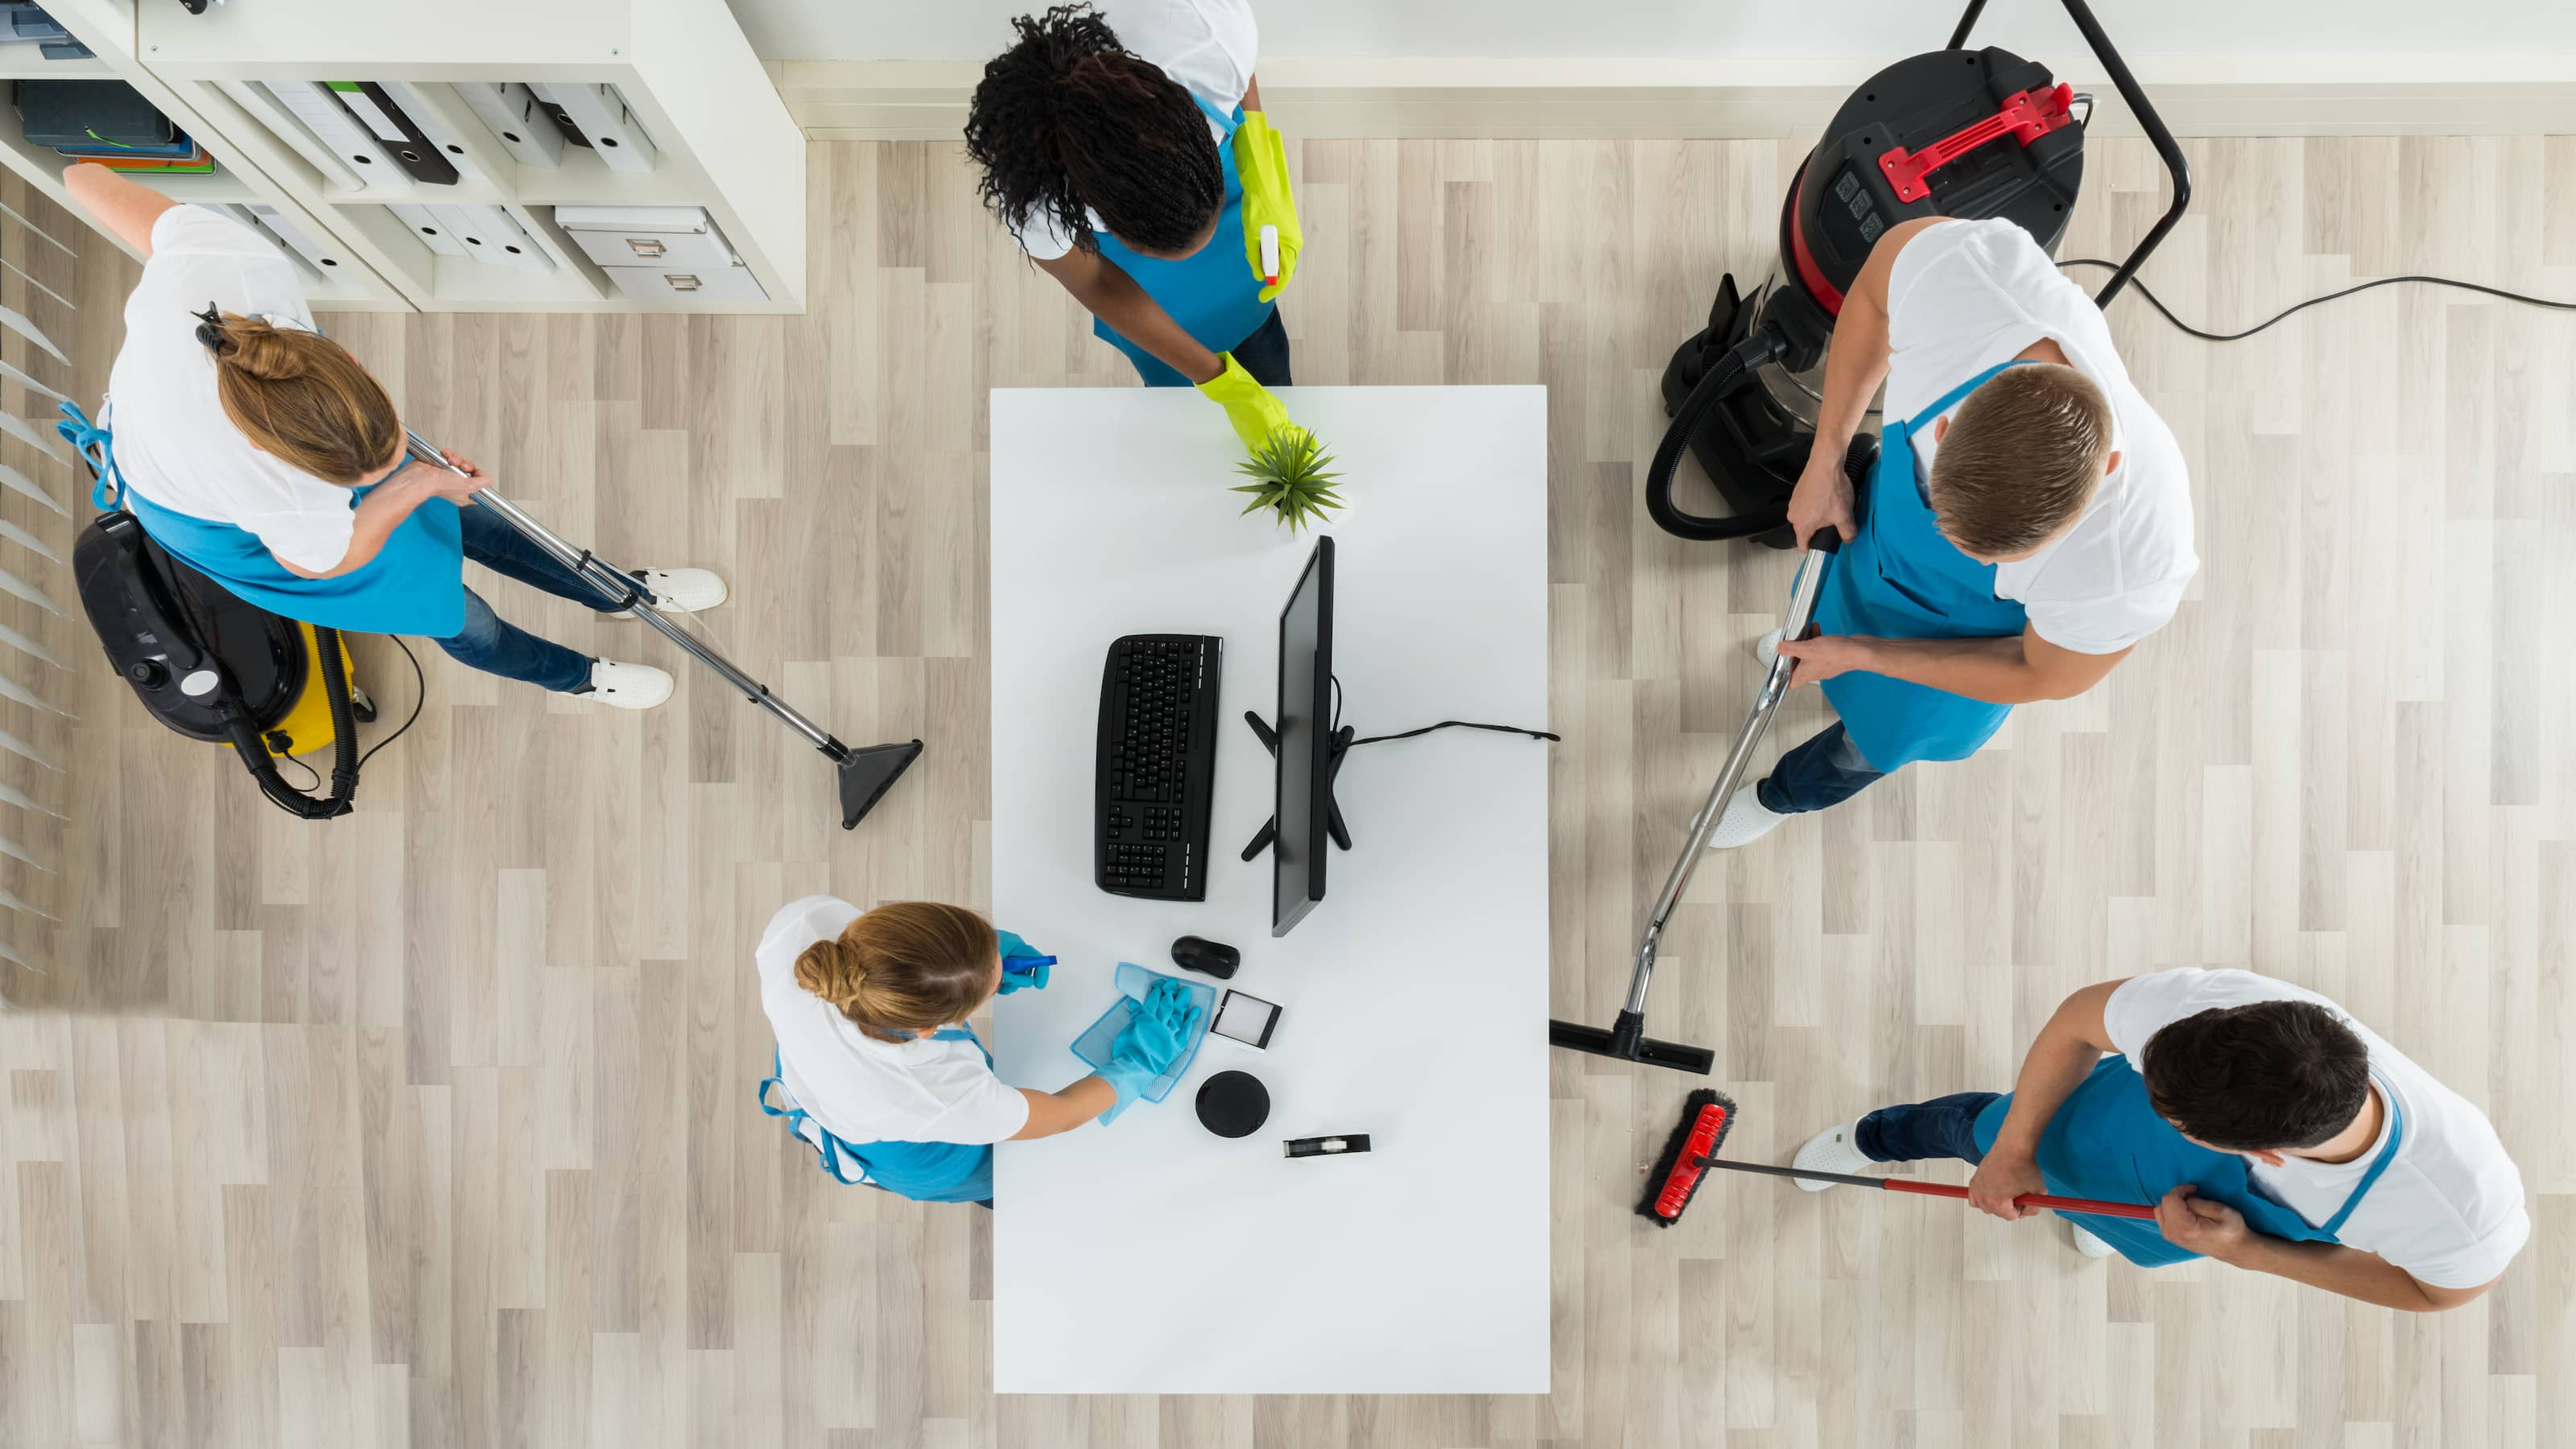 Professional cleaners will ensure that your office is clean and professional.